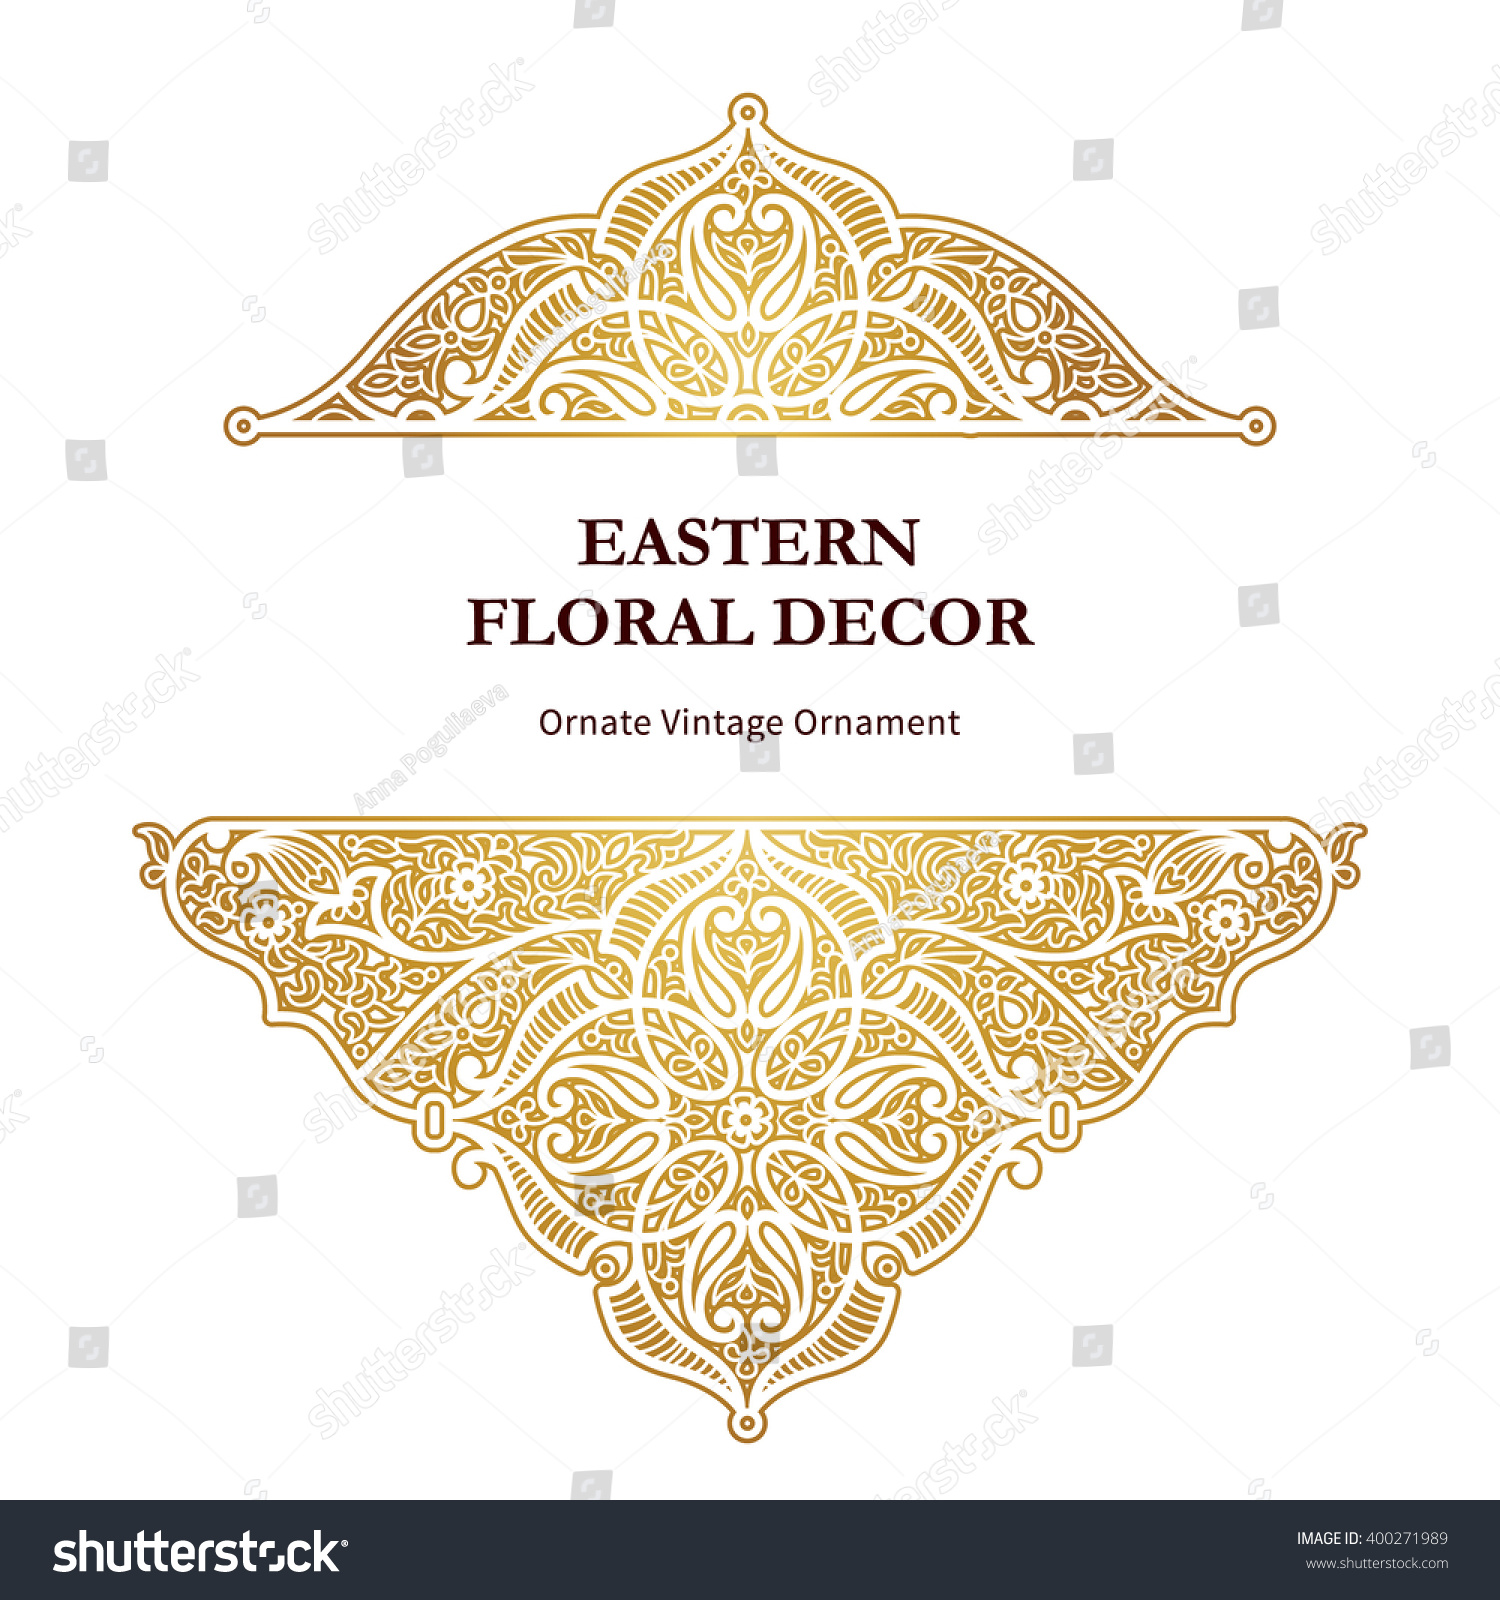 vector element frame design template luxury stock vector 400271989 shutterstock. Black Bedroom Furniture Sets. Home Design Ideas